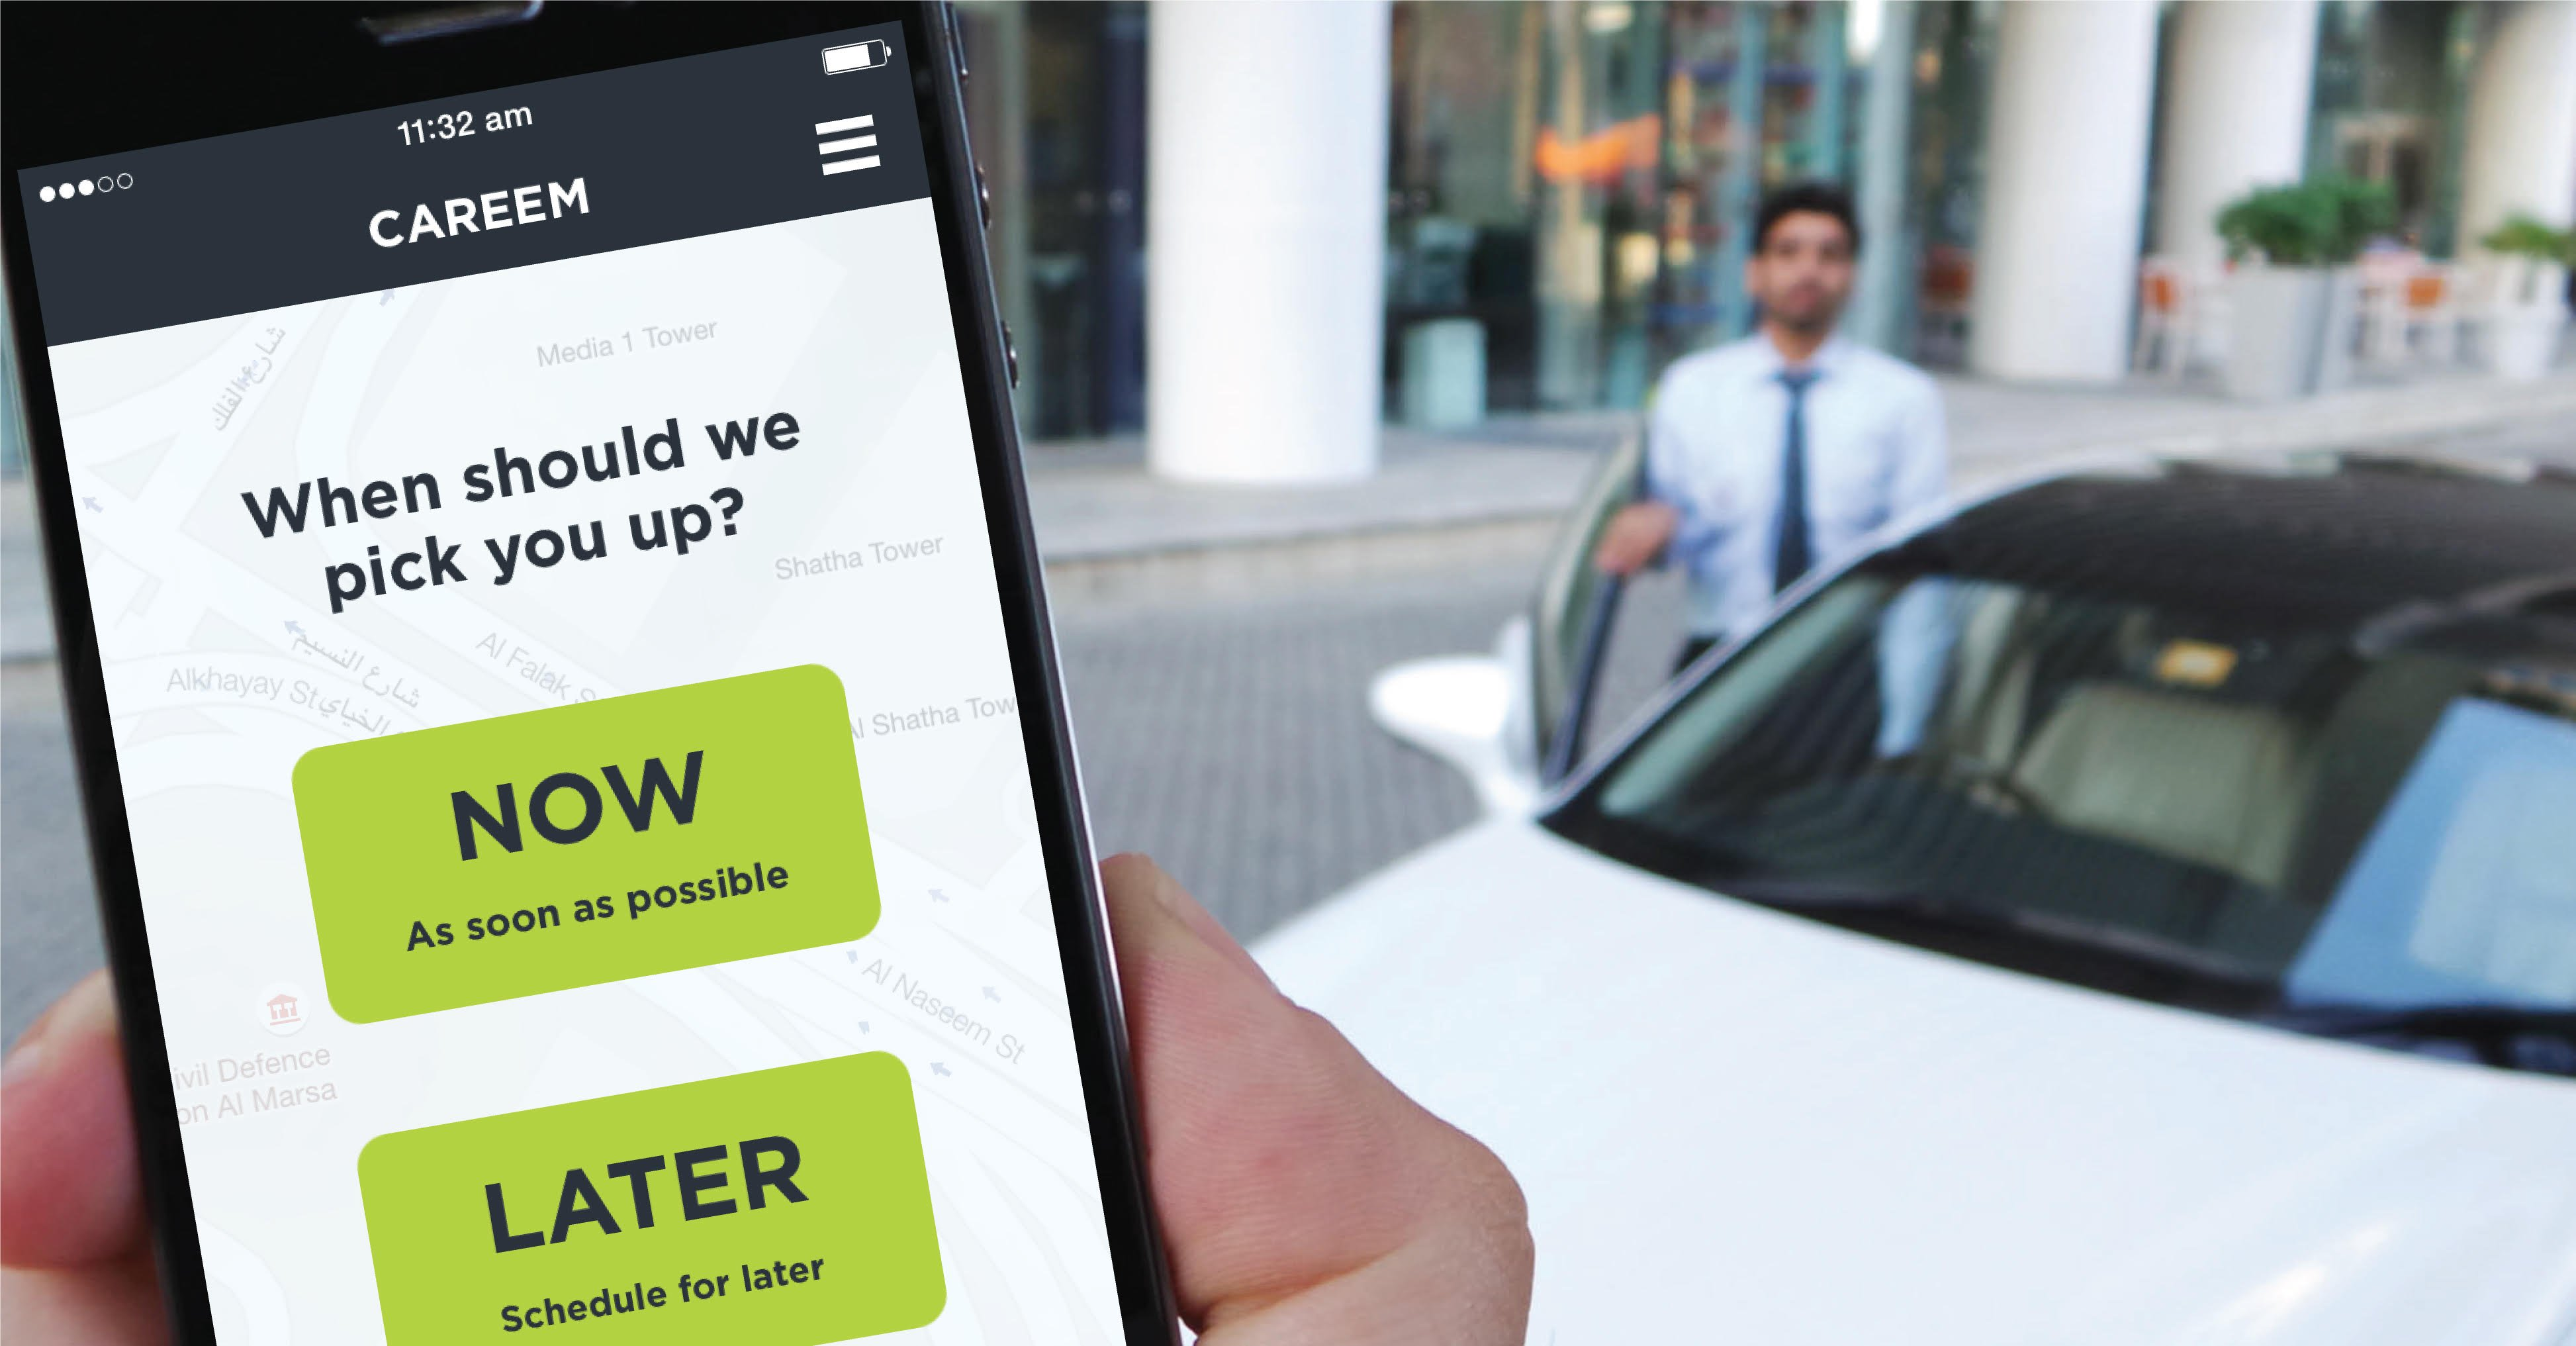 careem hits a bump in the road as allegations of harassment emerge